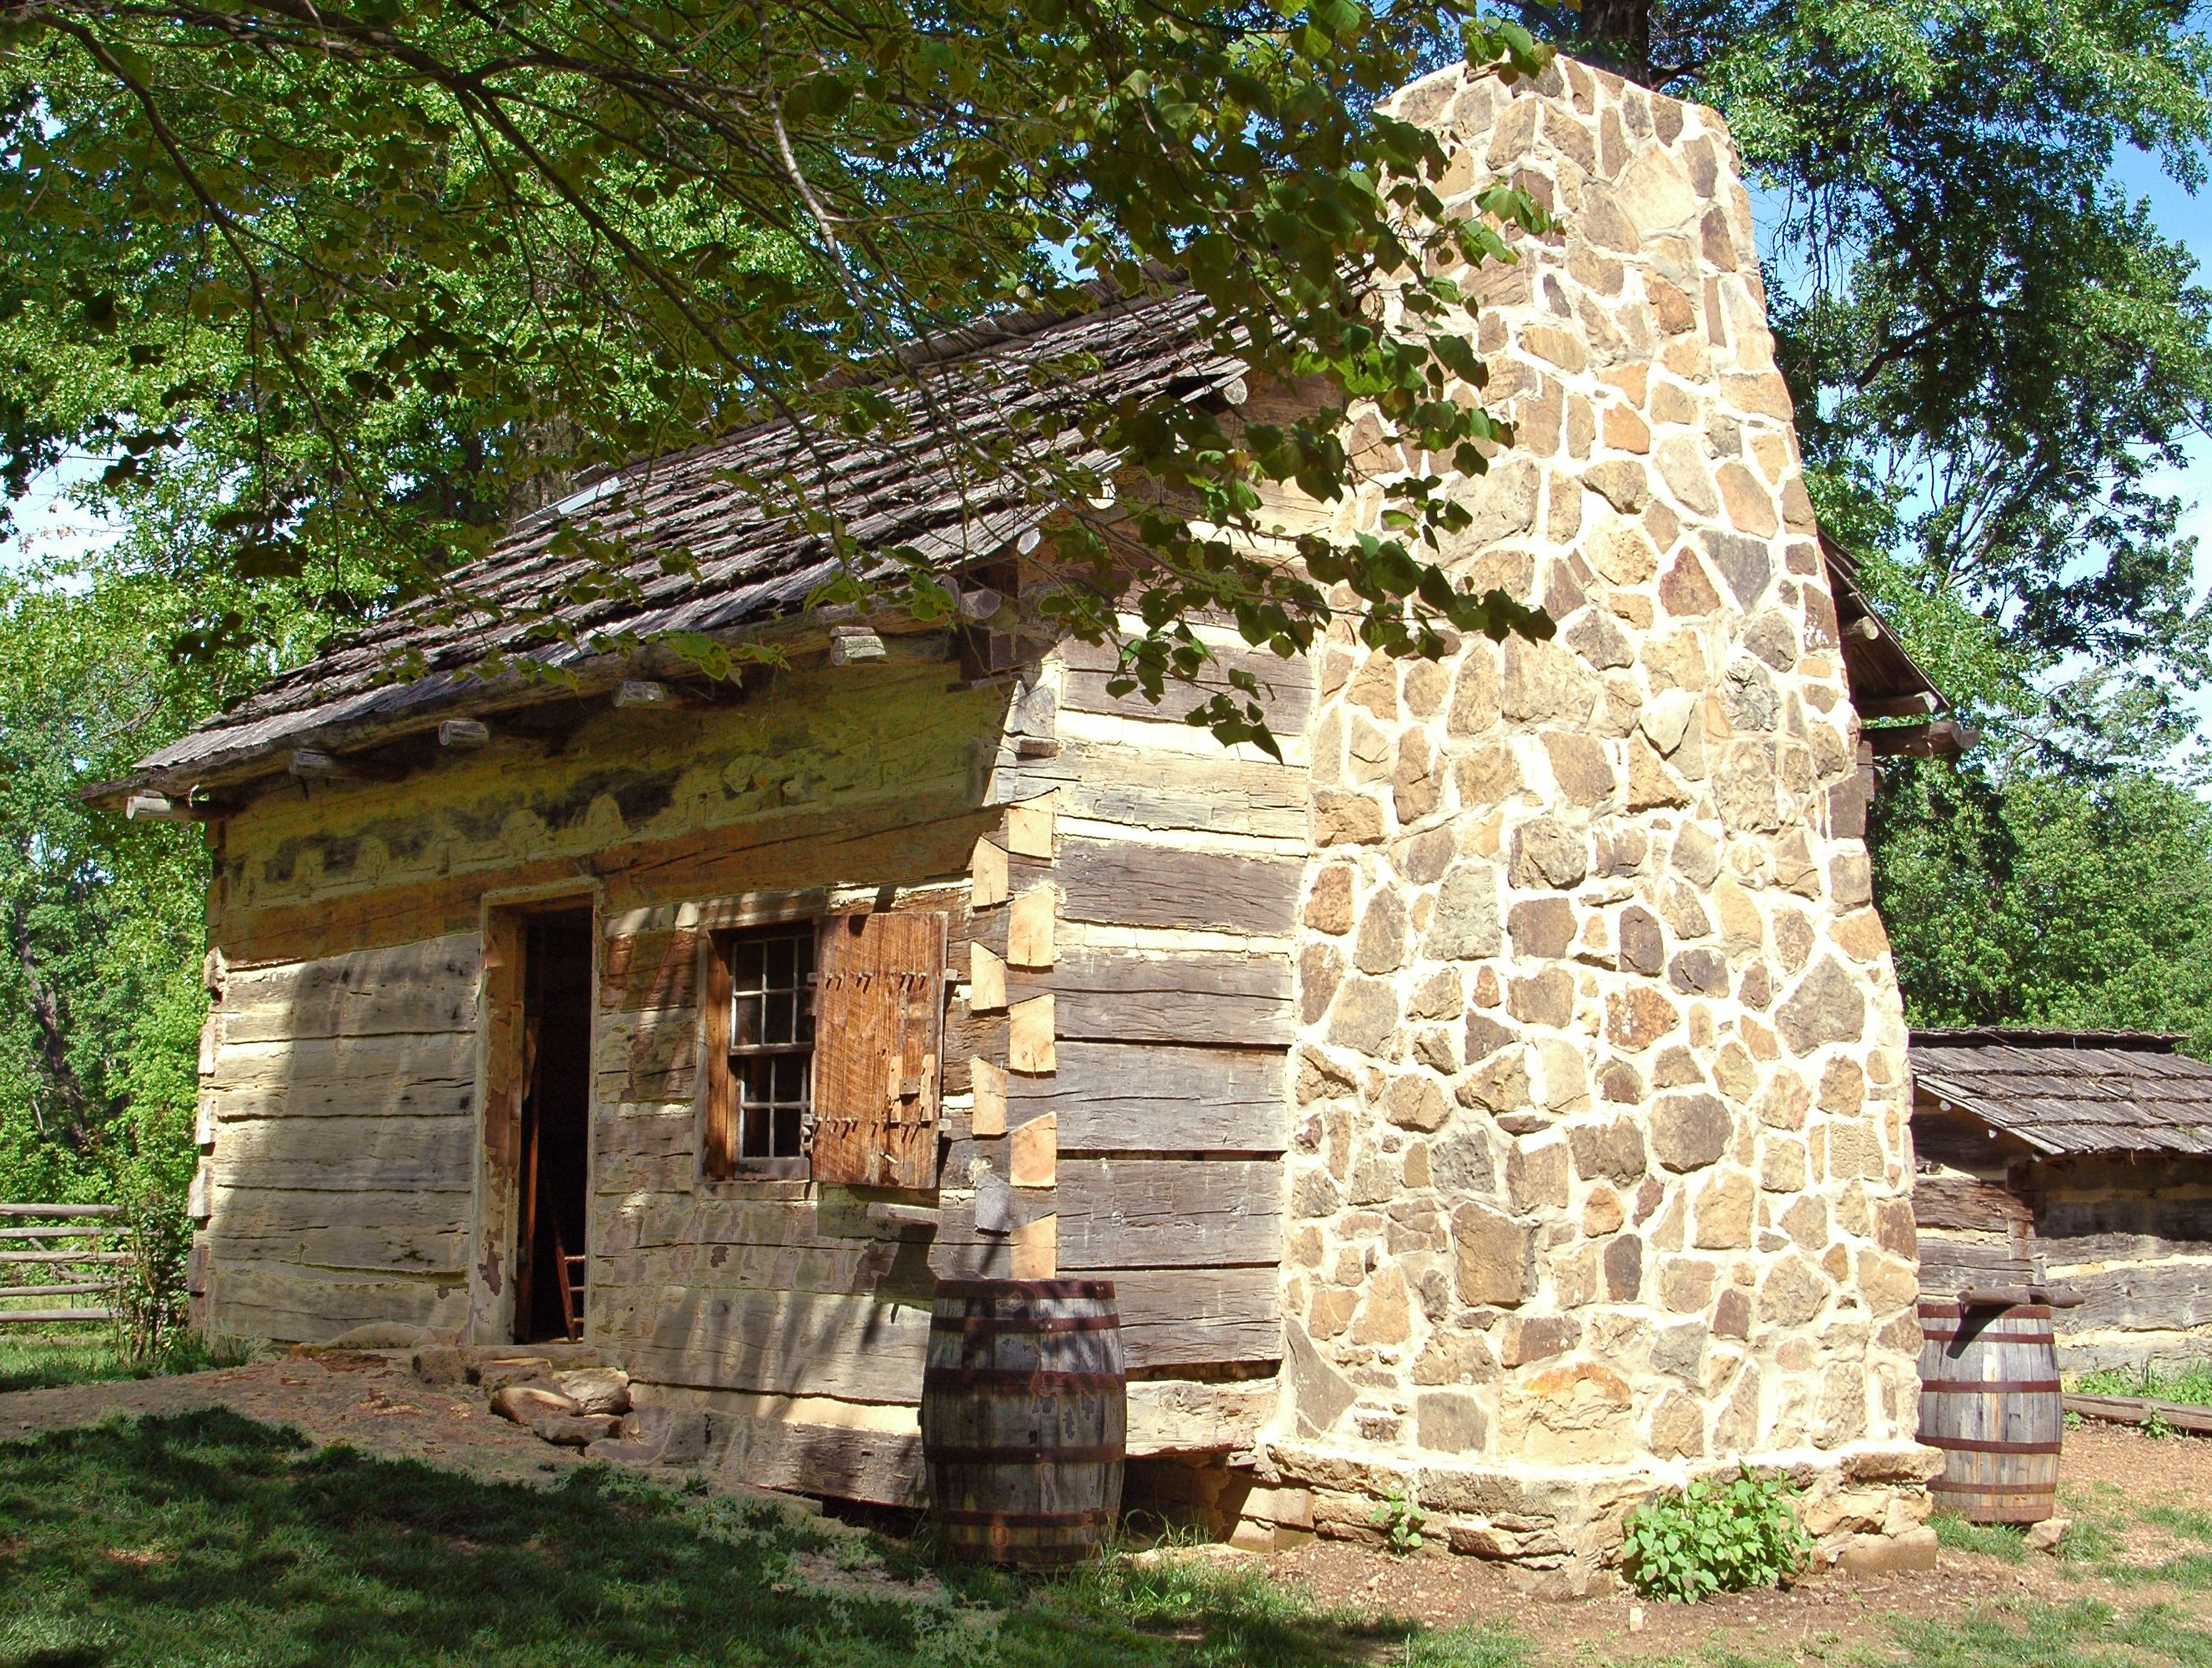 pigeon creek lincolns boyhood home in indiana from 1816 to 1830 rustic cabinslog